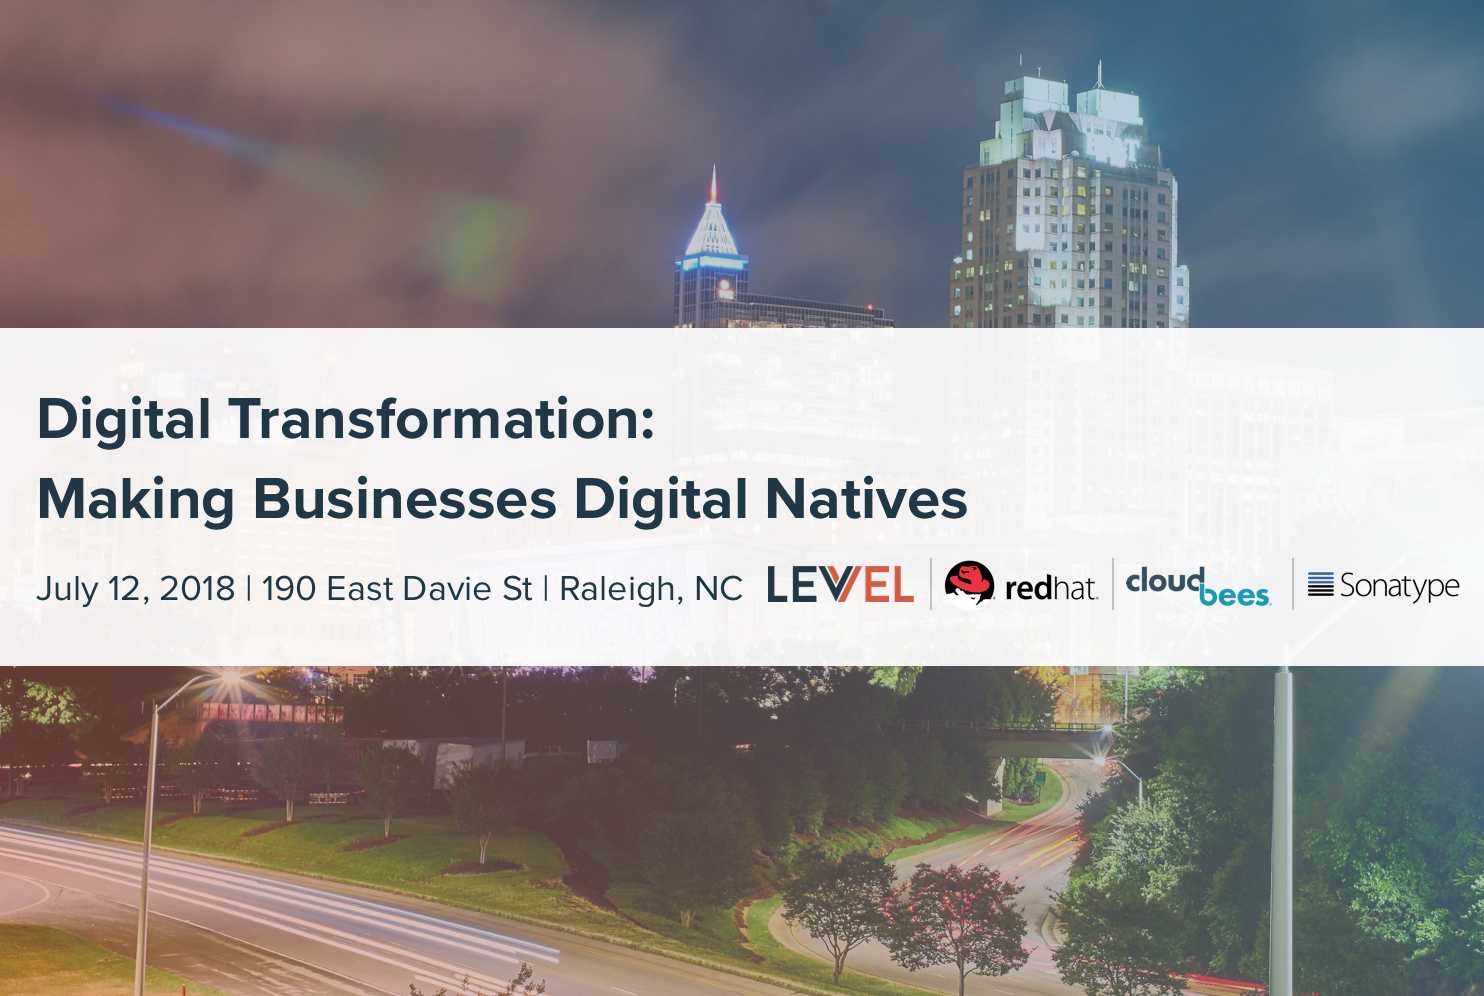 Digital Transformation: Making Businesses Digital Natives